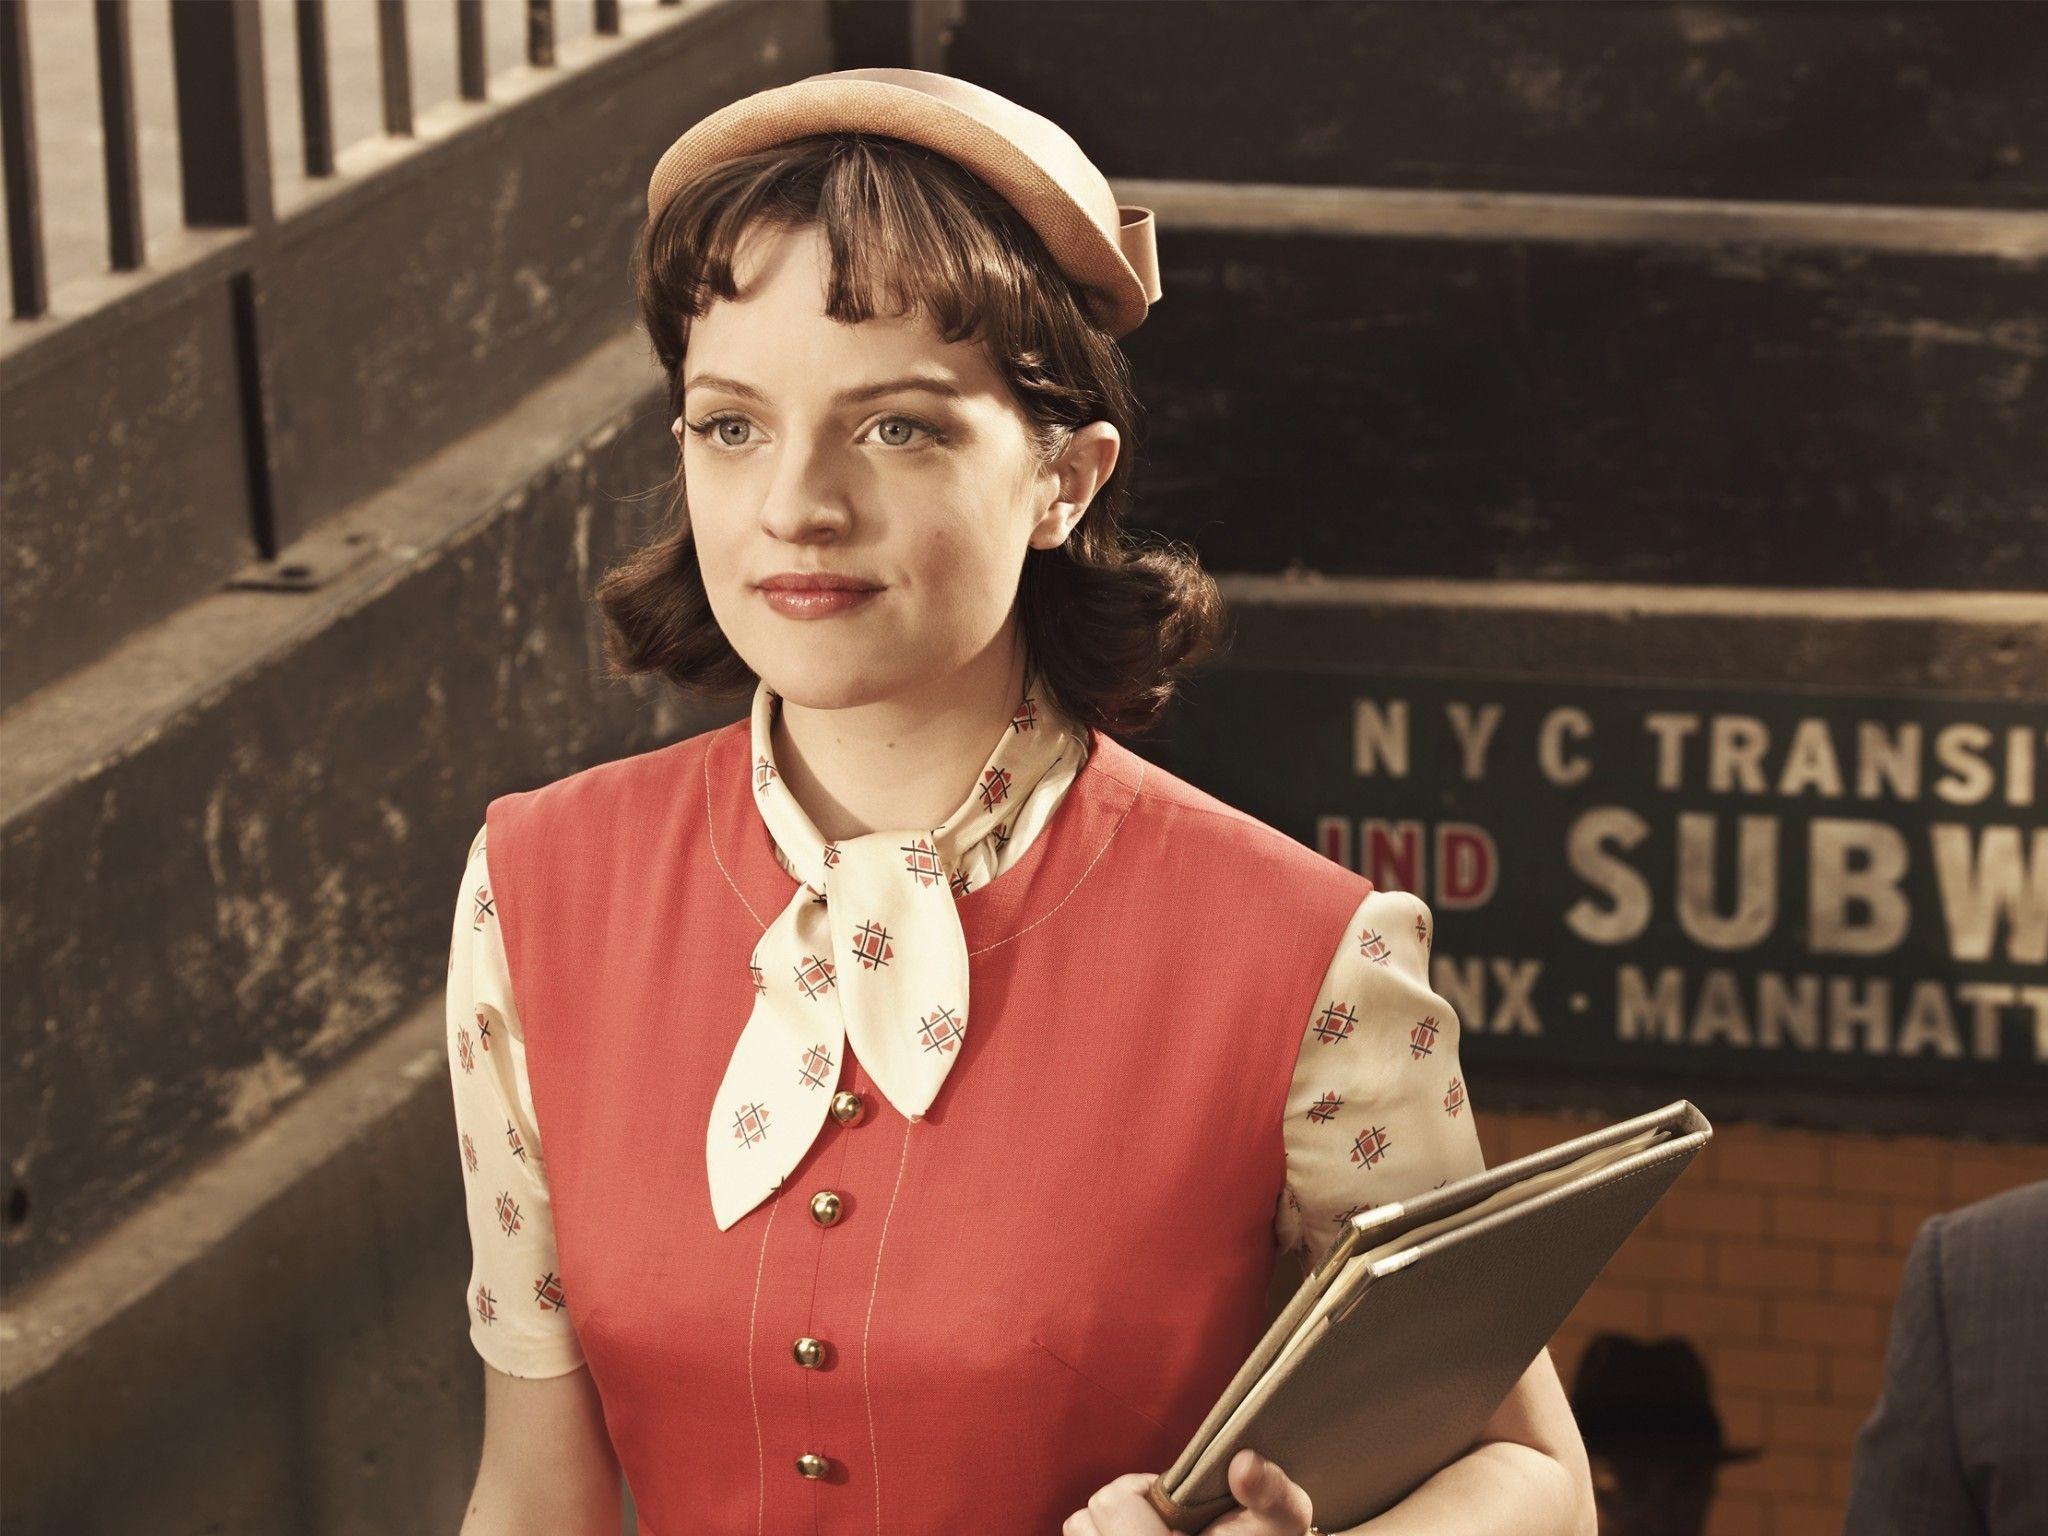 peggy_olson_mad_men_10_powerful_women_from_movies_and_tv_series_fabulous-muses3